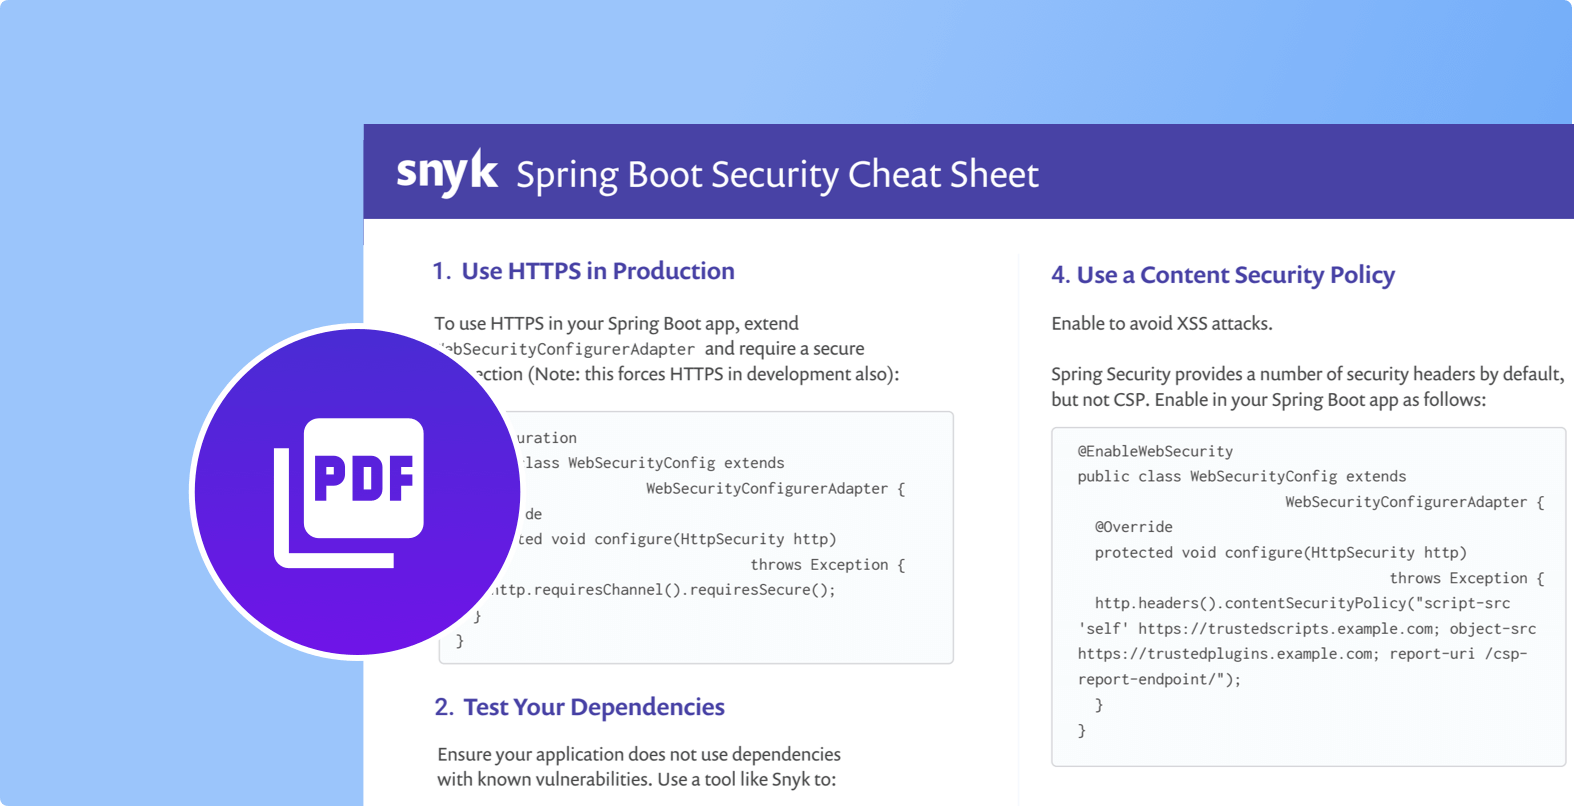 10 Spring Boot security best practices | Snyk